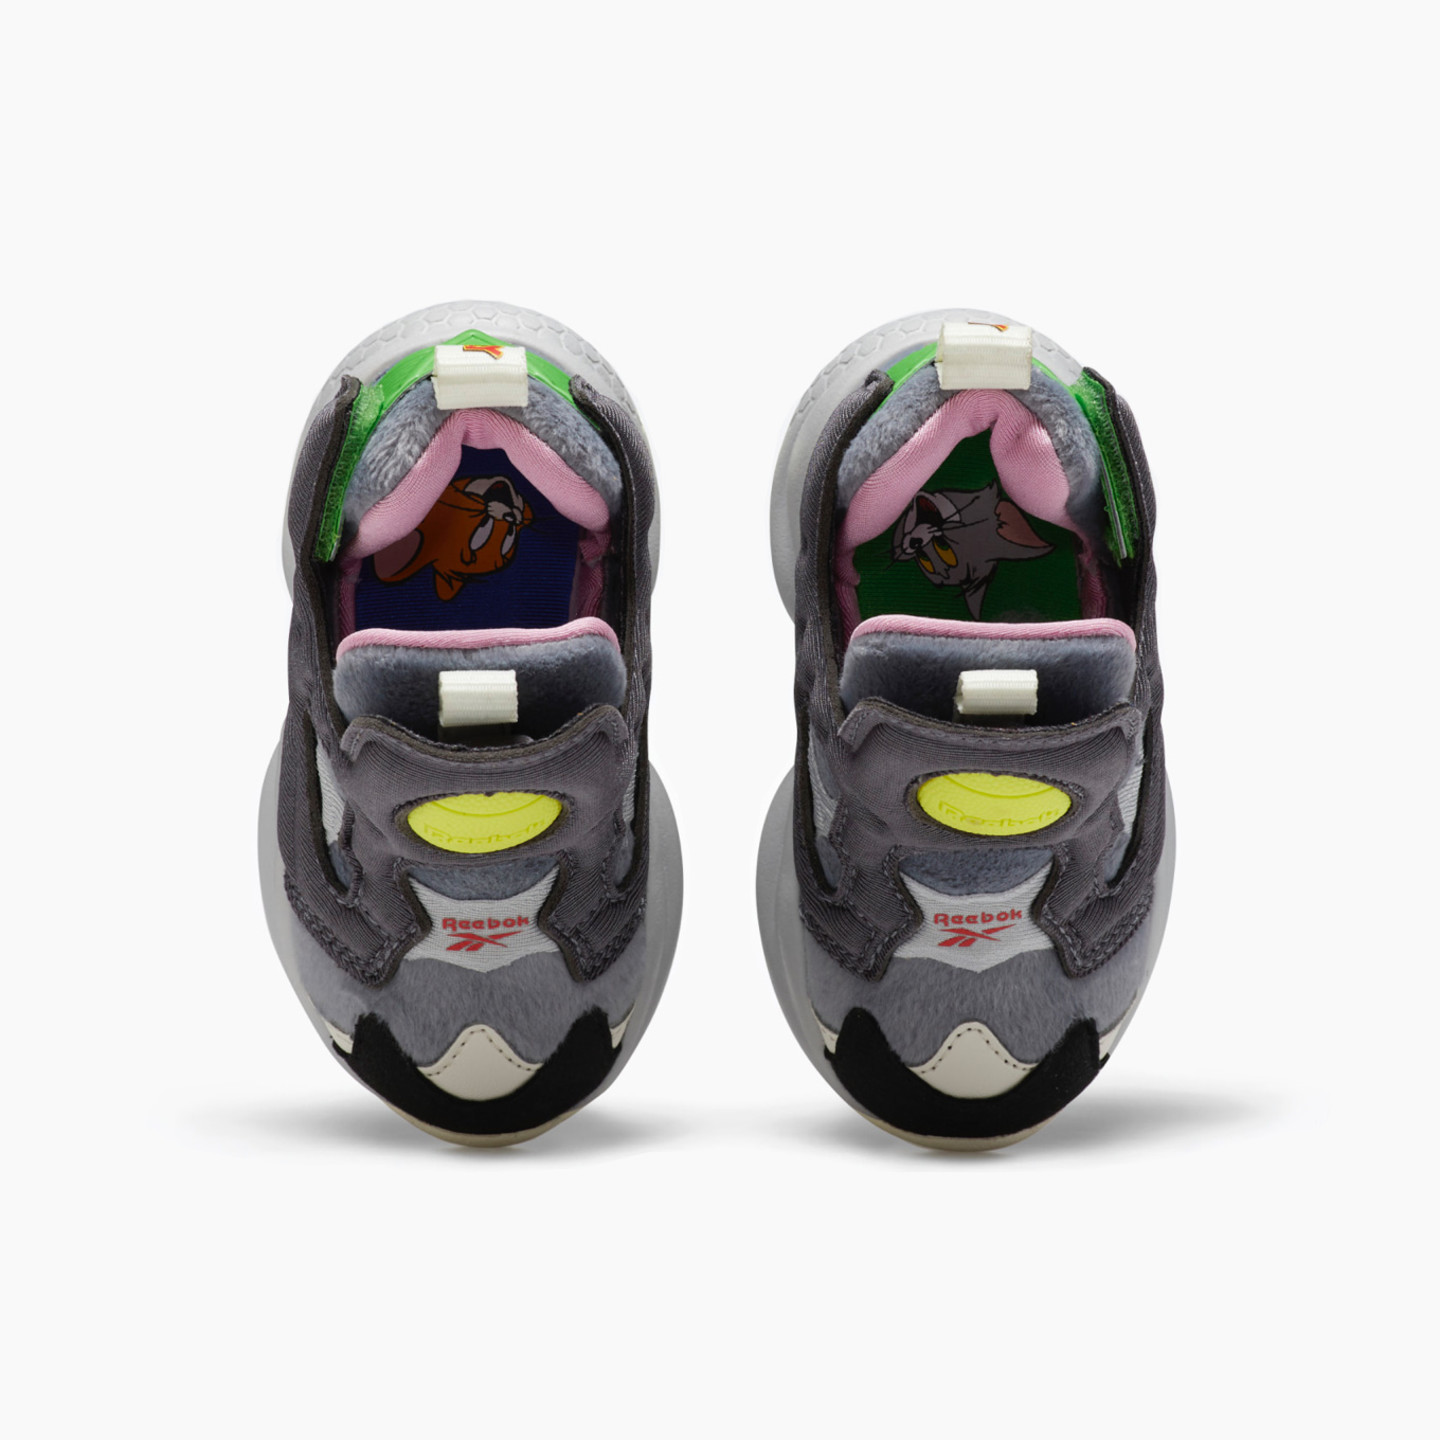 Reebok Versa Pump Fury 'Tom & Jerry' Cold Grey / Hero Yellow / Black FW4660